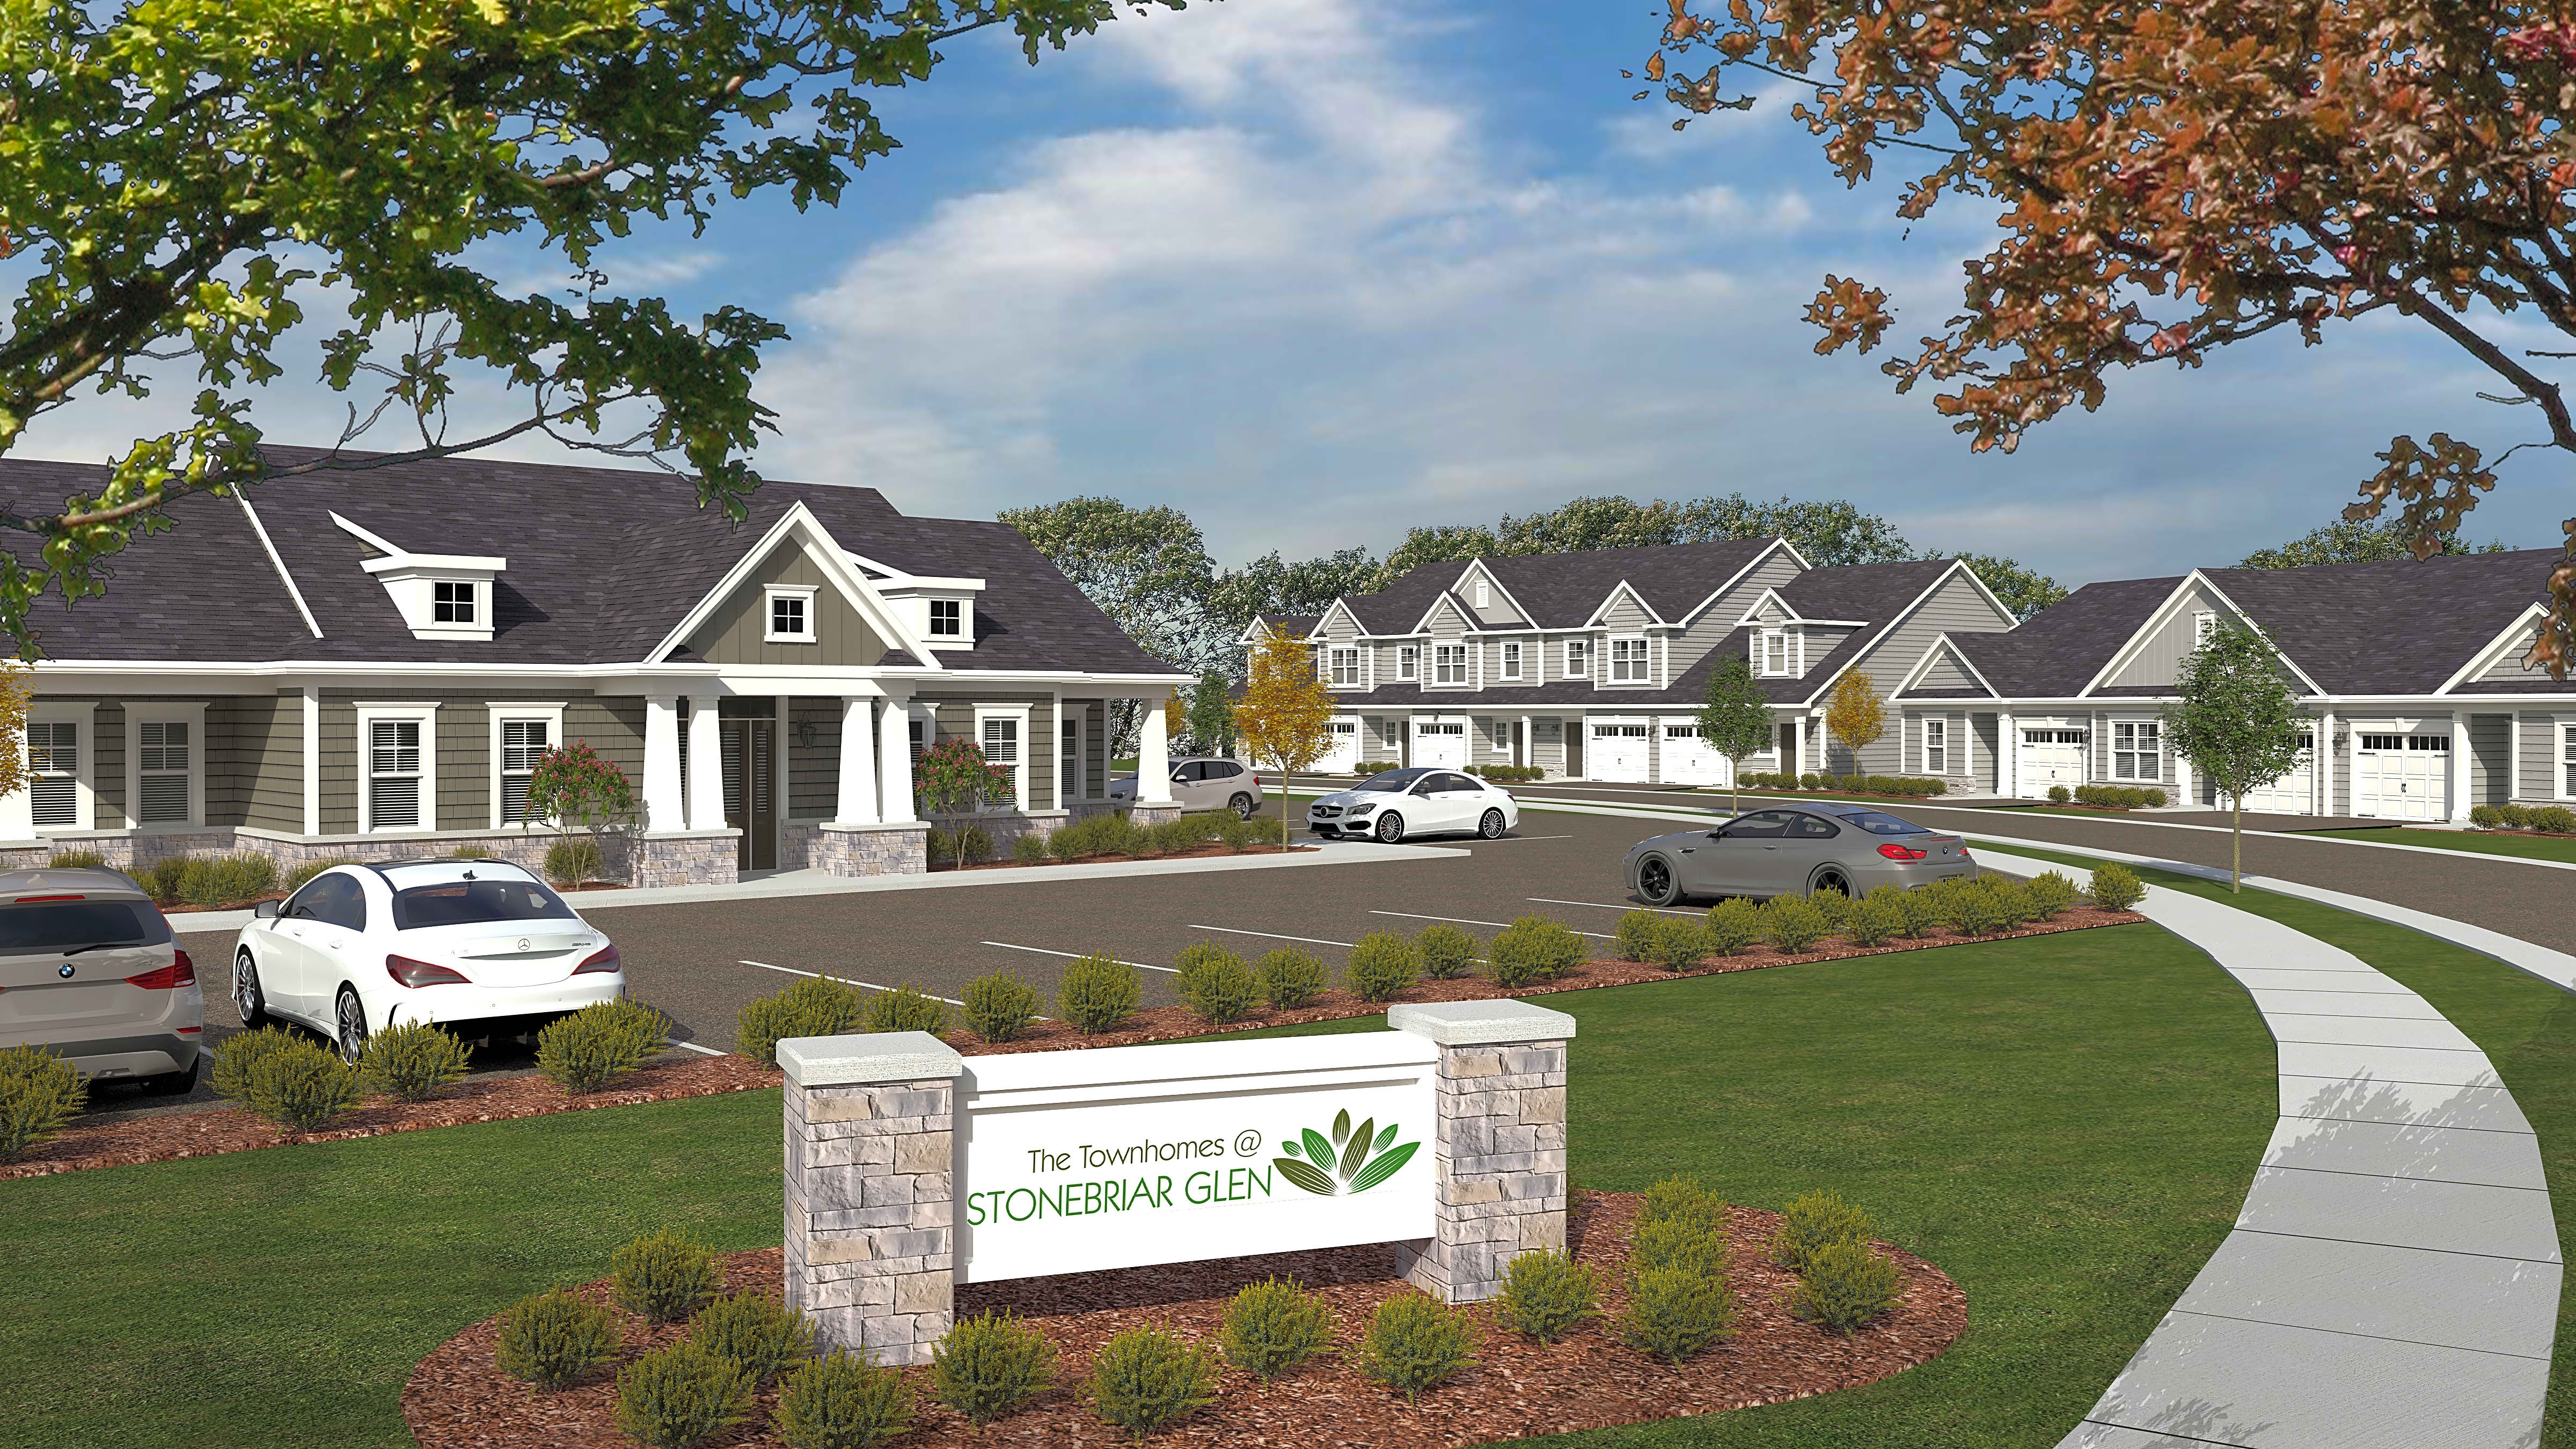 Apartments Near Brockport The Townhomes at Stonebriar Glen for Brockport Students in Brockport, NY